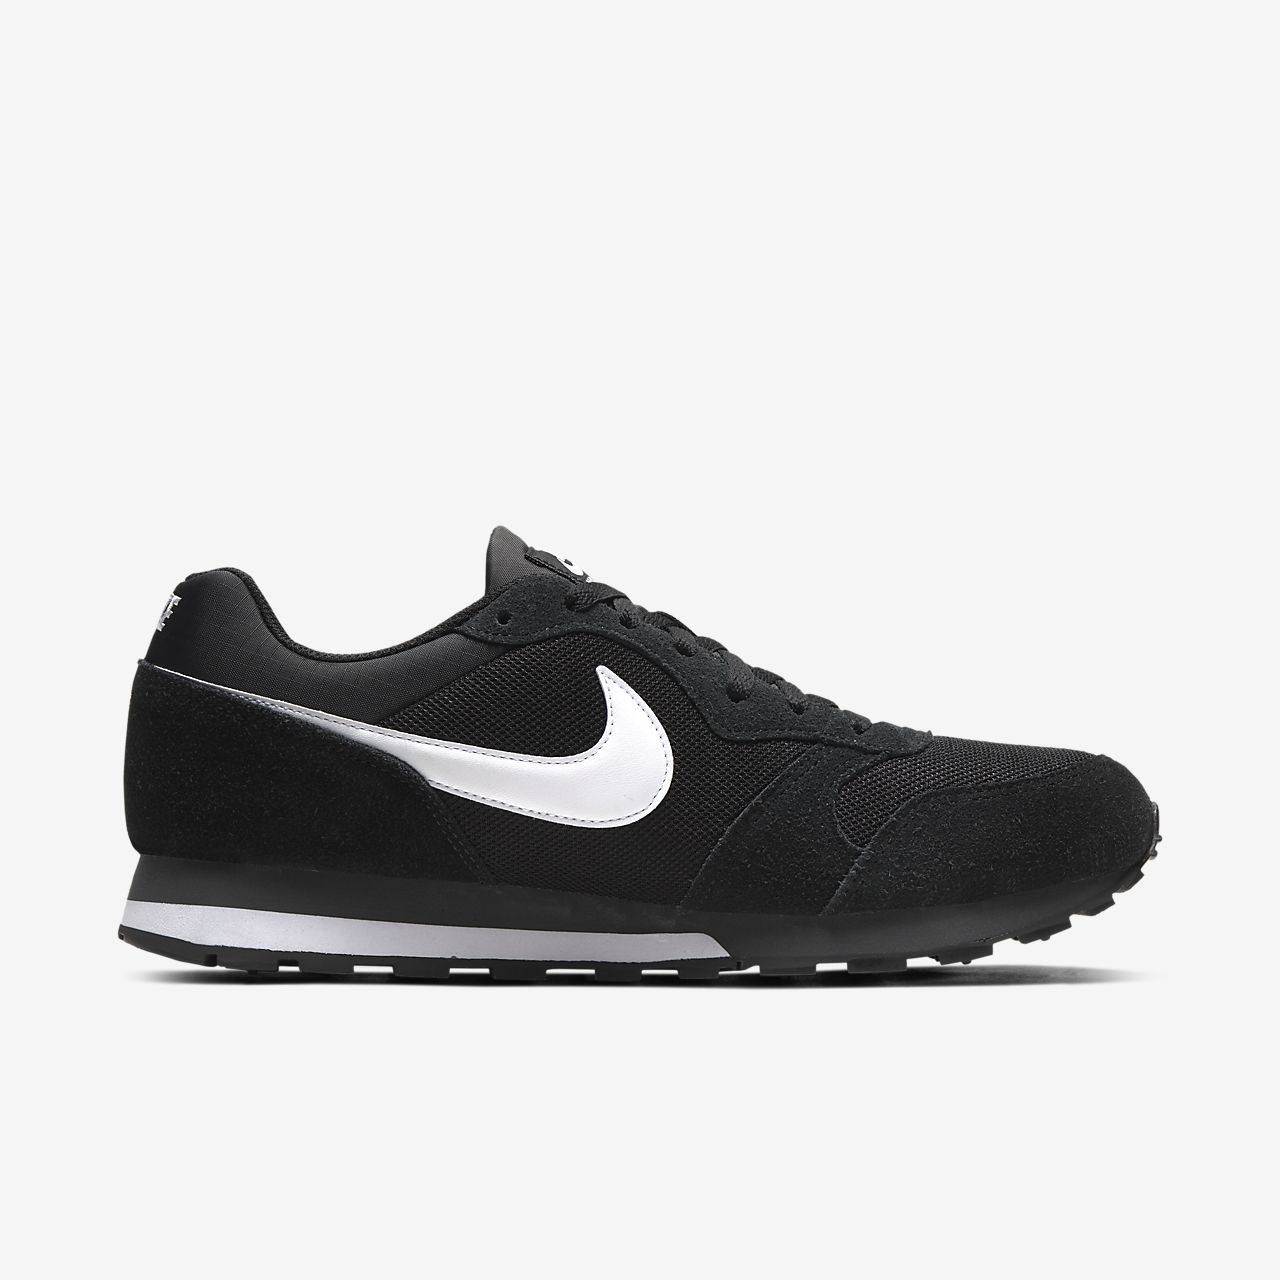 ... Nike MD Runner 2 Men's Shoe